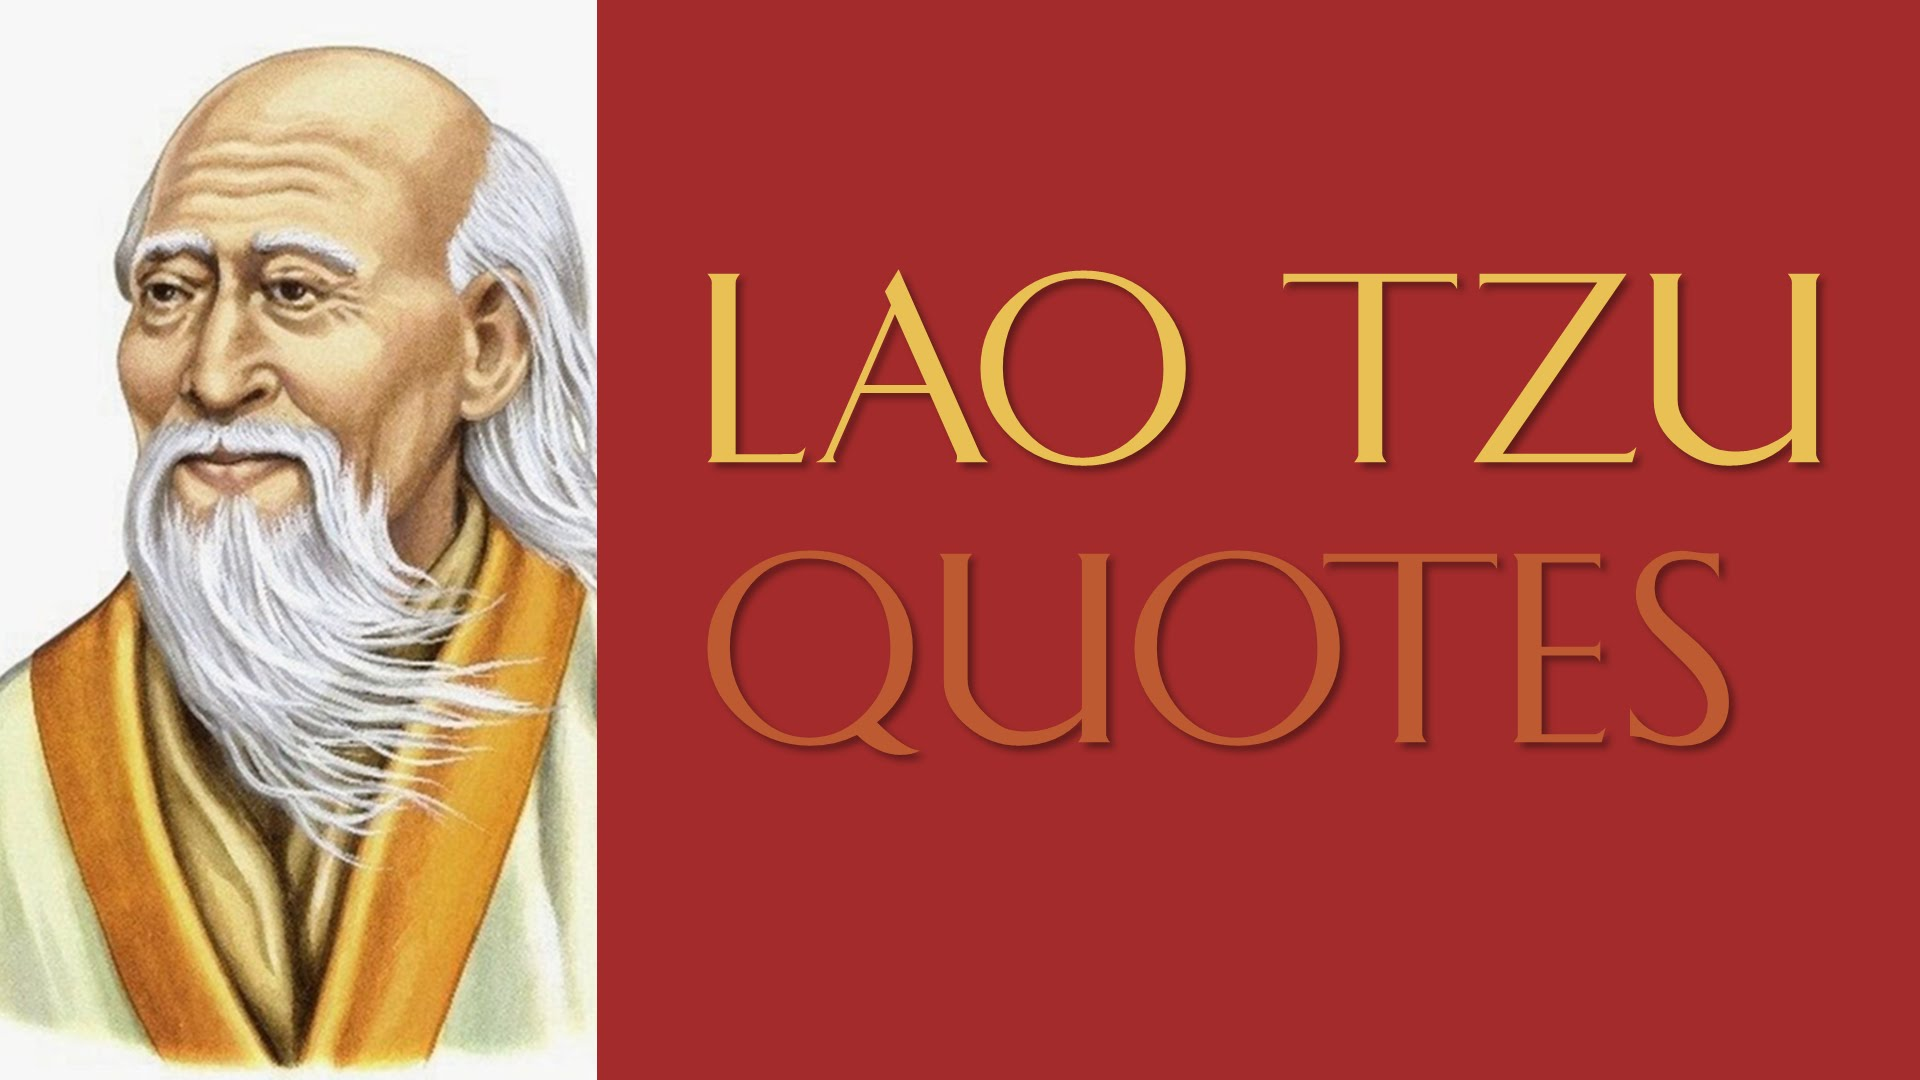 Lao Tzu Quotes Lao Tzu Quotes on Love Lao Tzu Quotes on Life Lao Tzu Quotes on Leadership Lao Tzu Quotes Watch your Thoughts Lao Tzu Quotes on Strength Lao Tzu Quotes on Success Lao Tzu Quotes on Work Lao Tzu Quotes on Thoughts Lao Tzu Quotes on Giving Lao Tzu Quotes on Time Lao Tzu Quotes about Change Lao Tzu Quotes about Self Lao Tzu Quotes about Attitude Lao Tzu Quotes about Education 90+【Lao Tzu Quotes】- Author of The Tao Te Ching We Have The Unique Quotation by Lao Tzu. These Amazing Collection of Leadership And Success Yet Life Quotes Are About Love, Attitude, Strength, Education, Self, Change, Time, Giving, Thoughts, Work, Watch your Thoughts Ans so on.